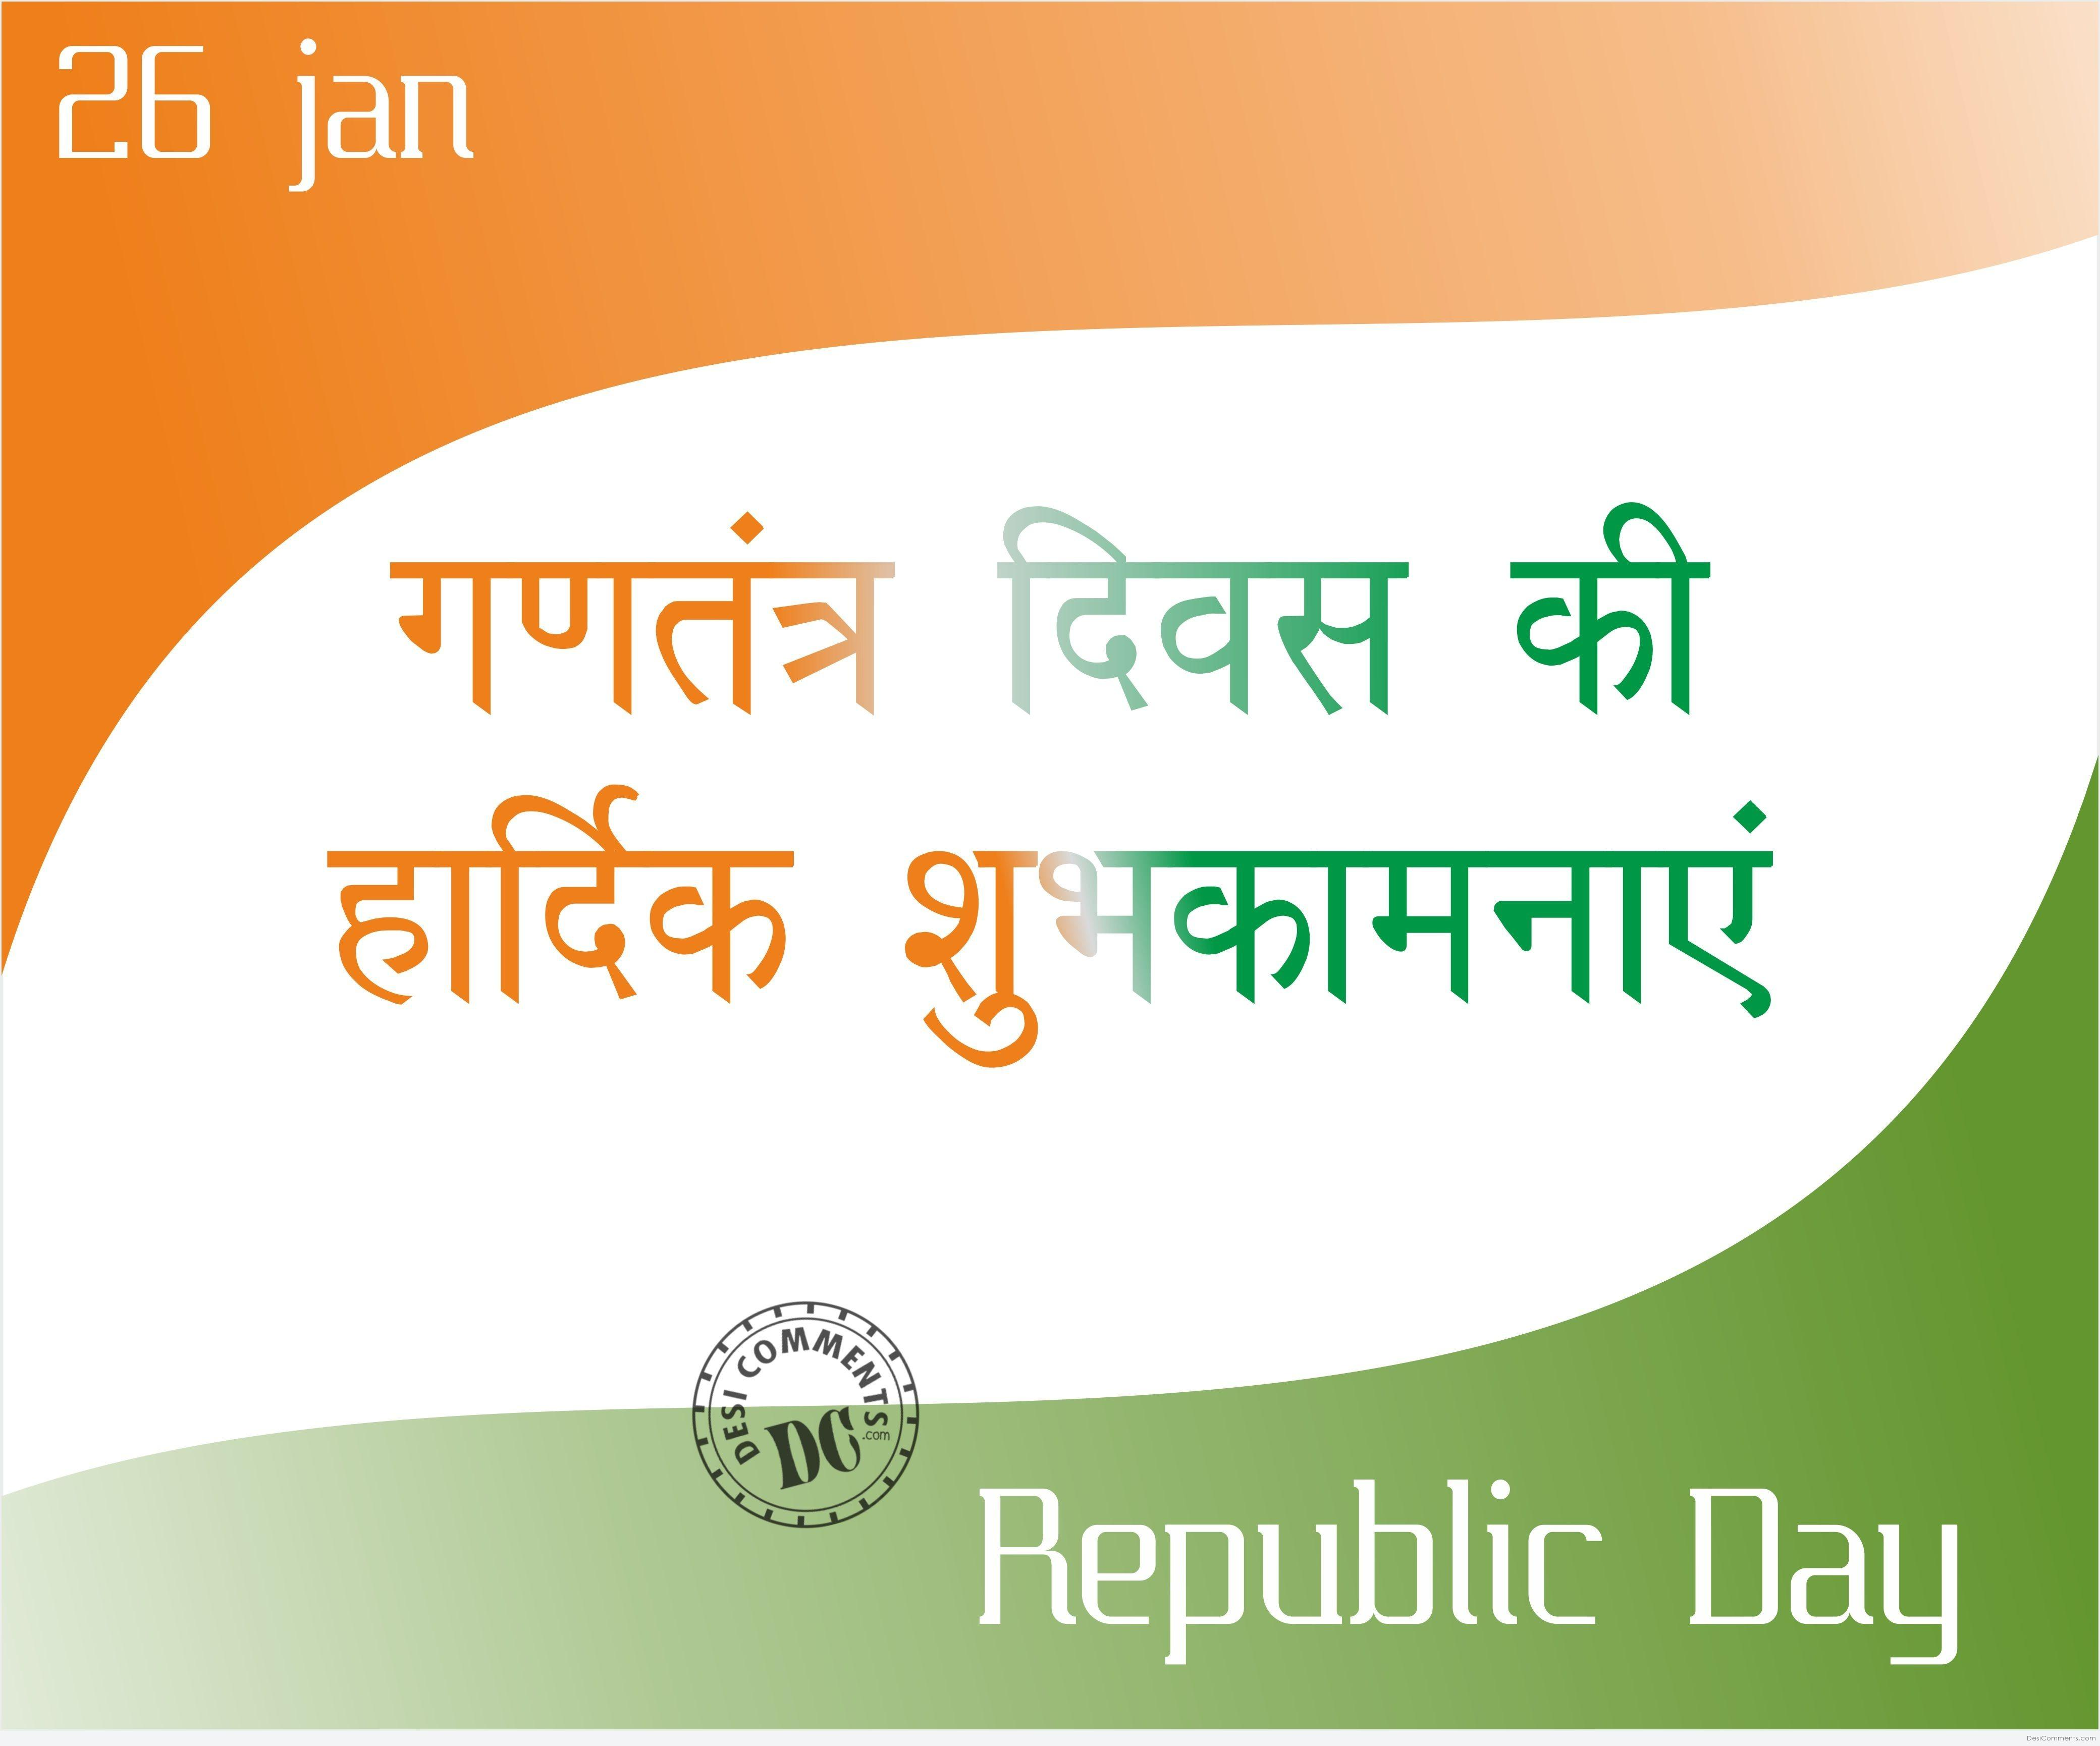 Republic day wishes desicomments republic day wishes ccuart Image collections